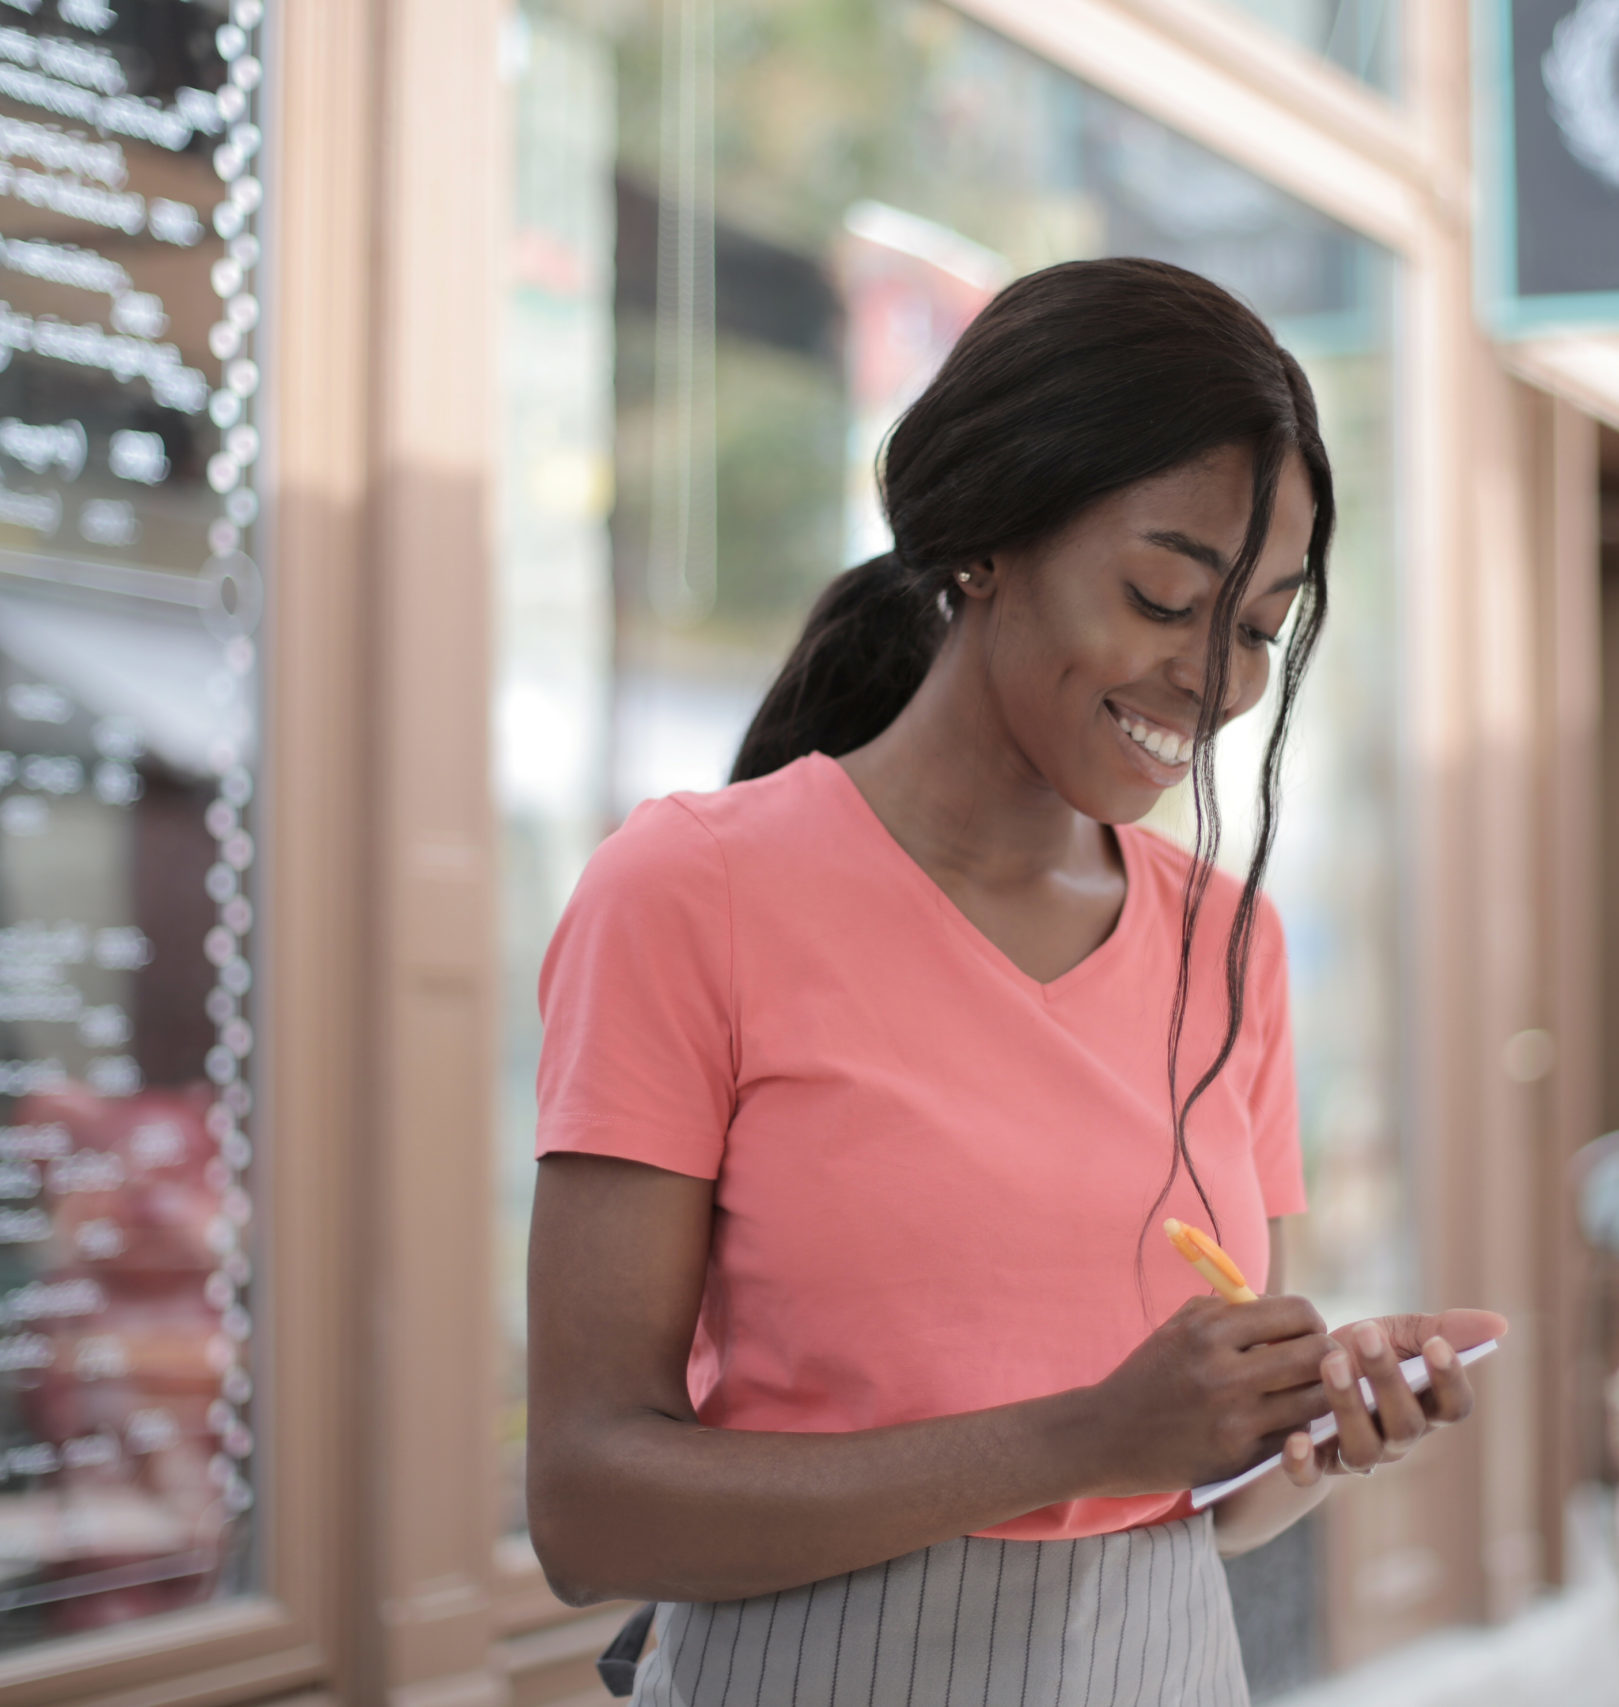 Canva – Photo of Woman Taking Order From a Customer